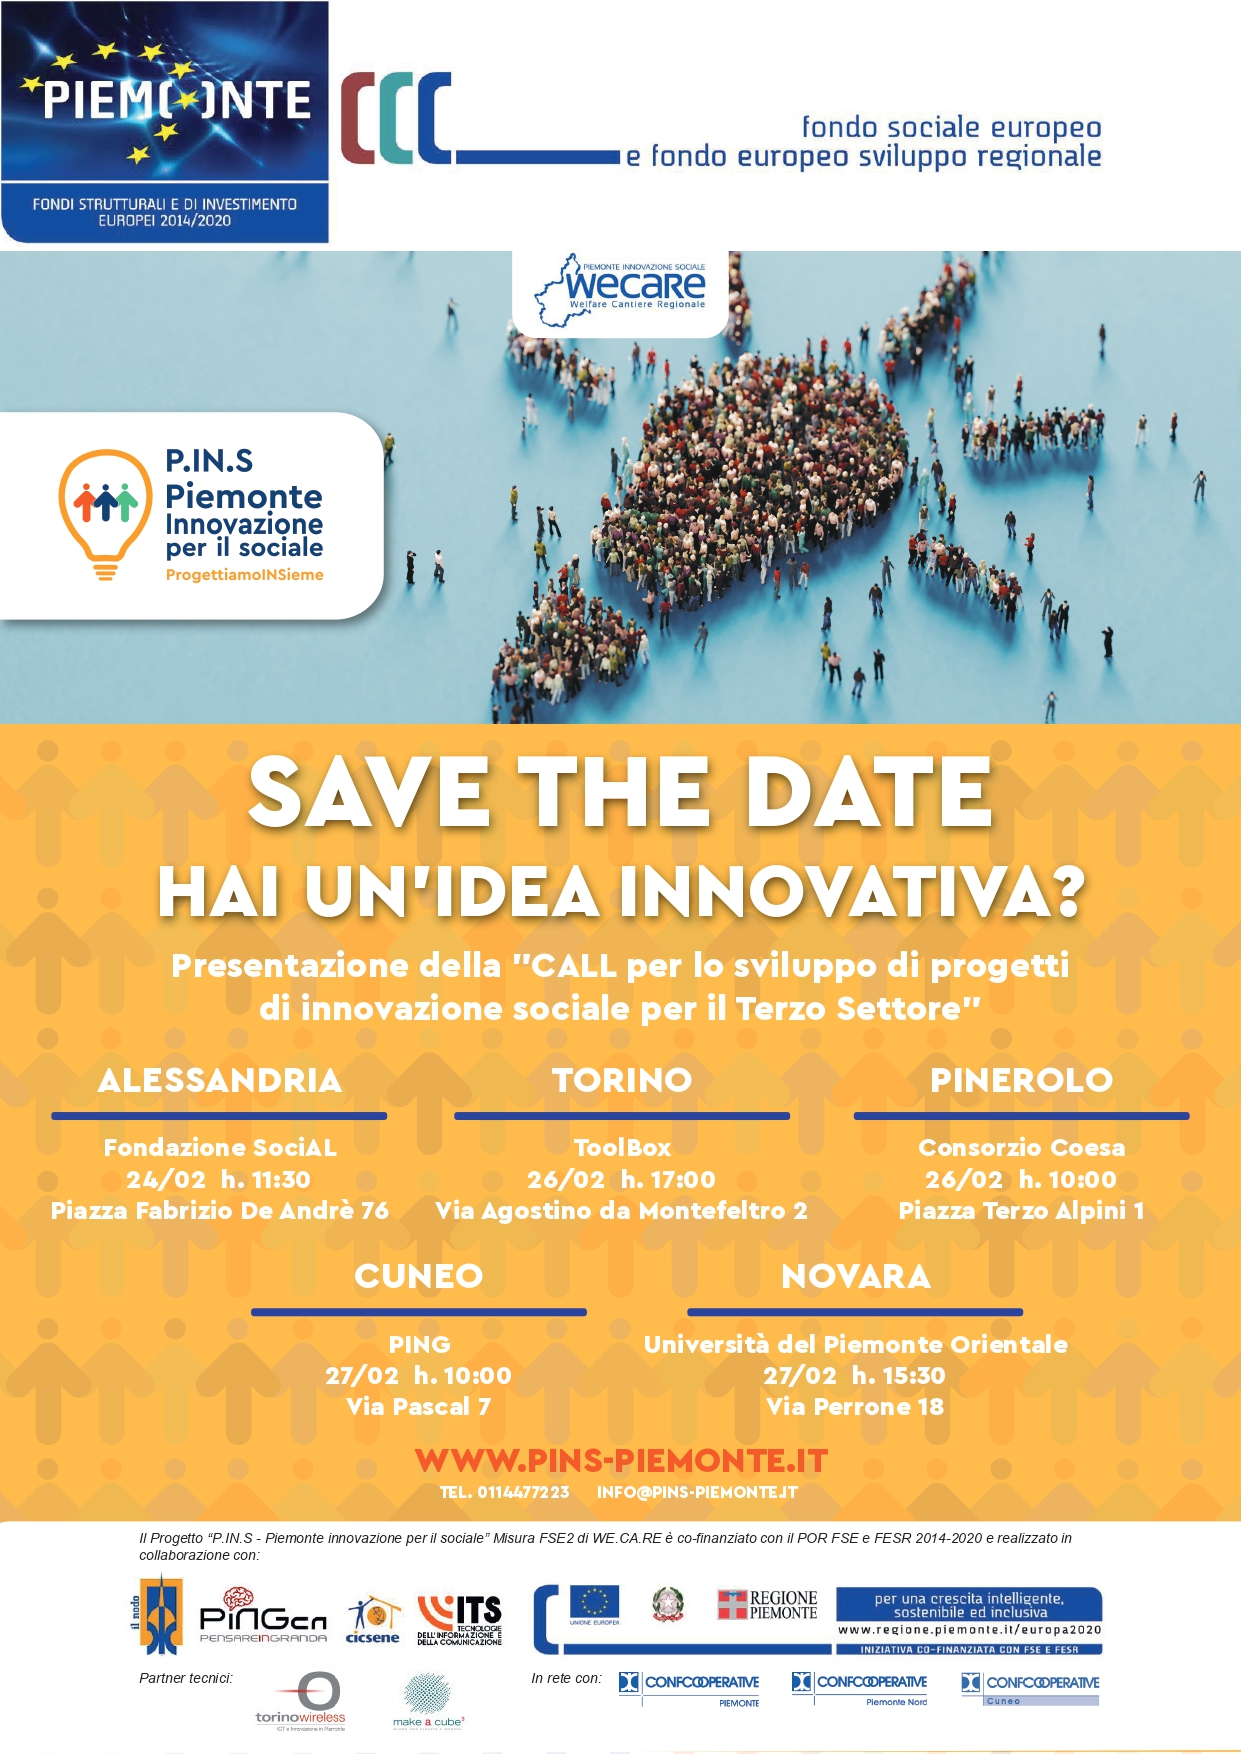 Save The Date – Candida la tua idea innovativa entro il 5/03/2020